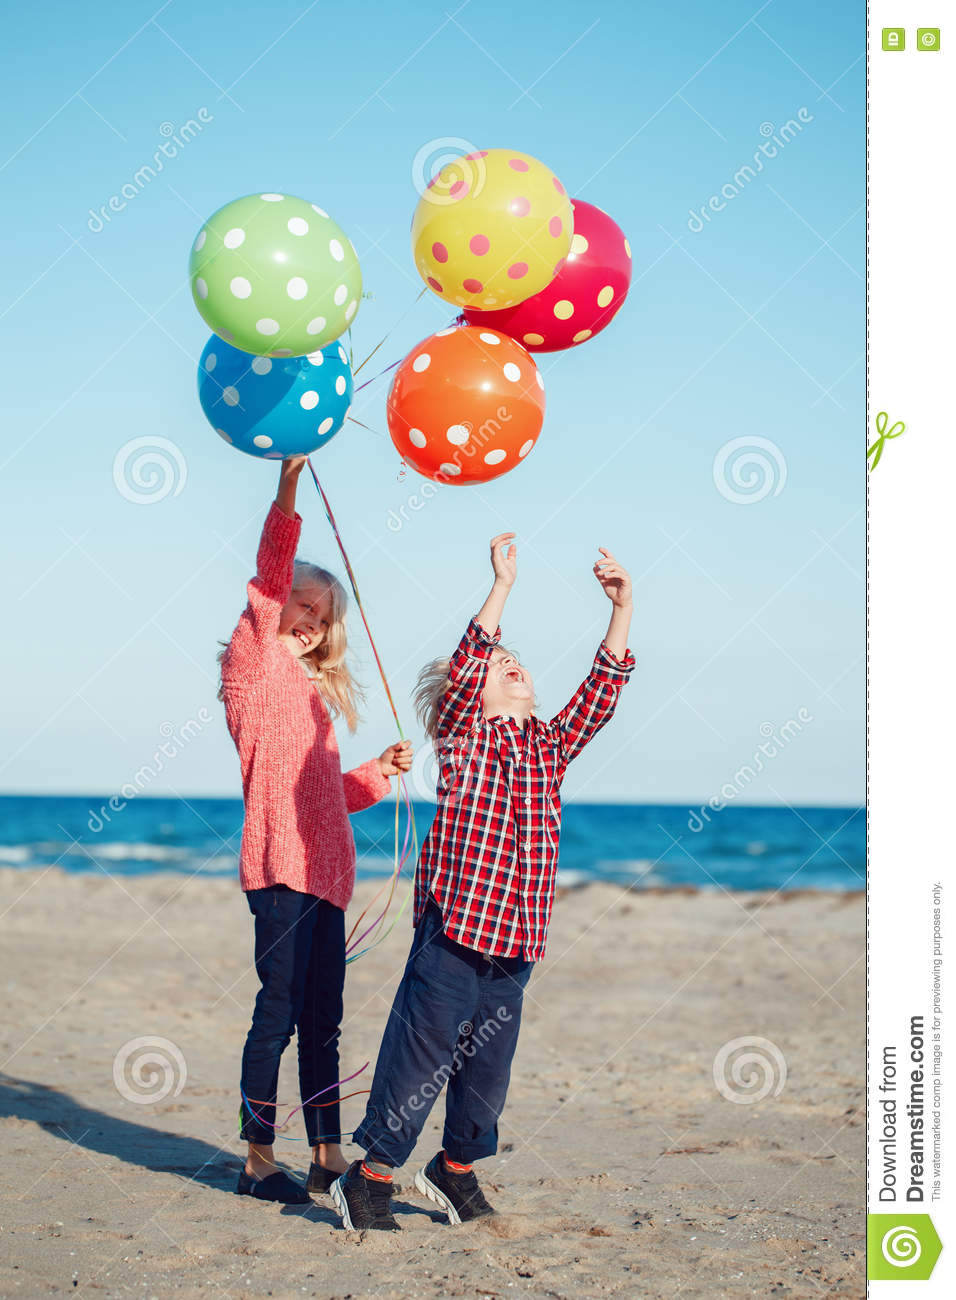 Group portrait of two funny white Caucasian children kids with colorful bunch of balloons, playing running on beach on sunset